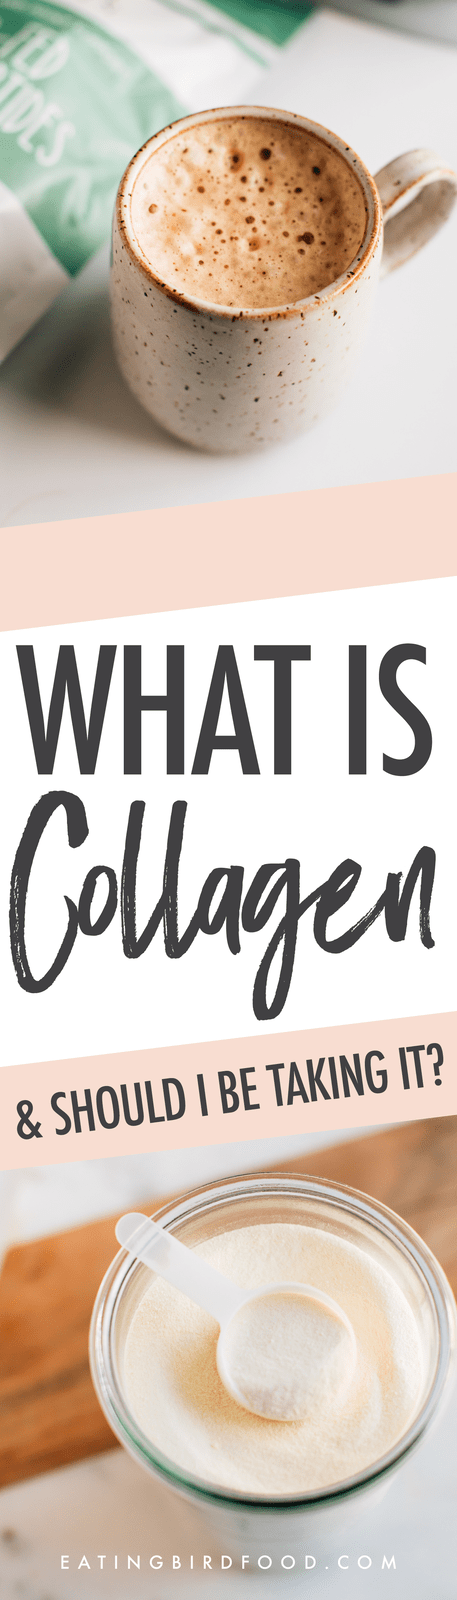 Want to learn more about collagen and why it's so popular among health enthusiasts? We're breaking it down for you today by answering the following questions: What is collagen, what does collagen do and should you be taking it...